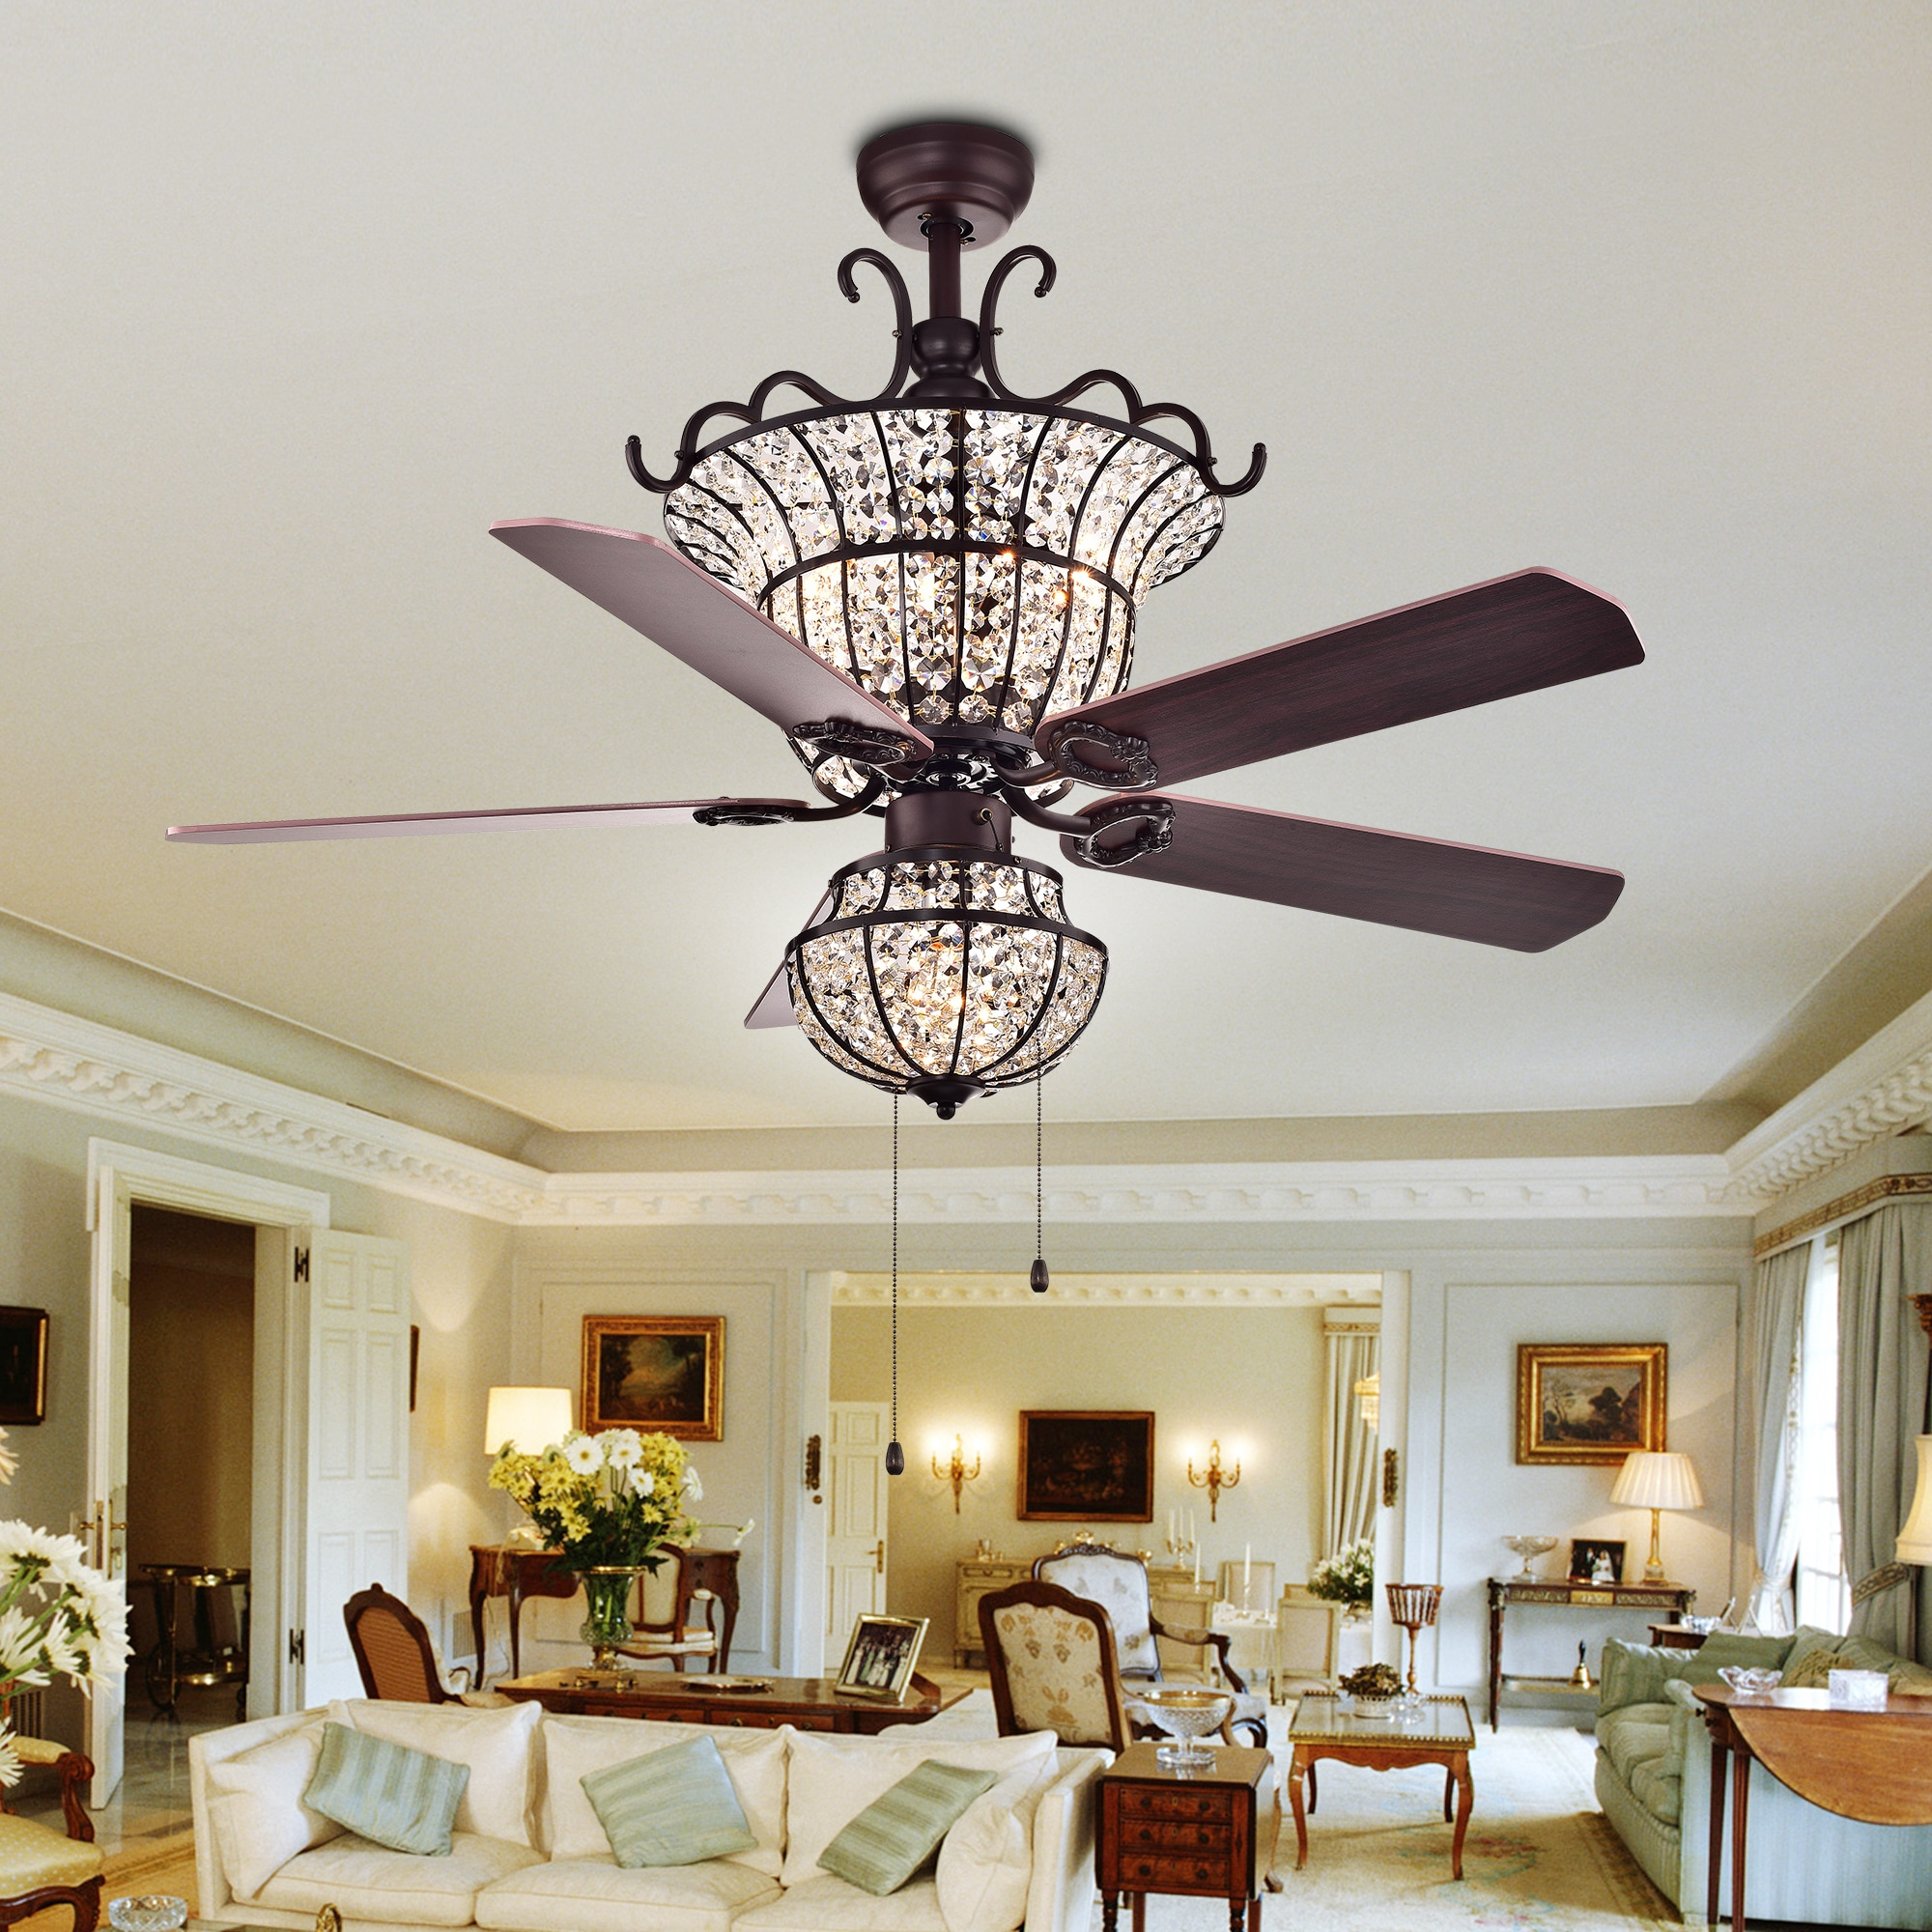 Charla 4 light Crystal 5 blade 52 inch Chandelier Ceiling Fan